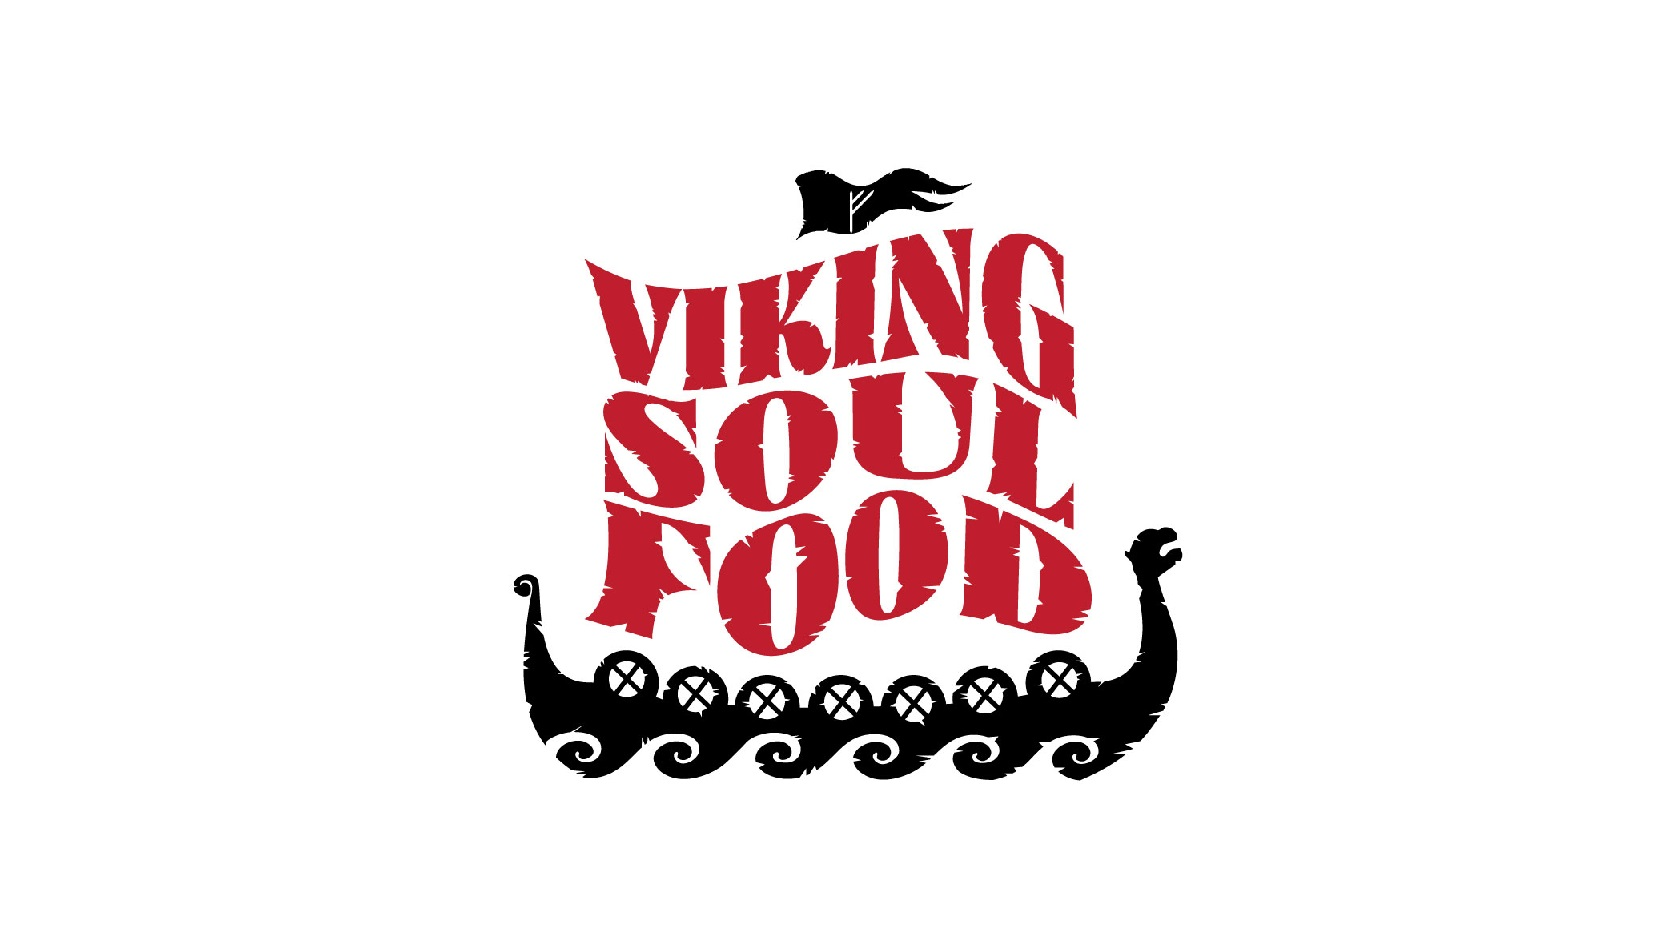 Viking-Soul-Food-Portland.jpg